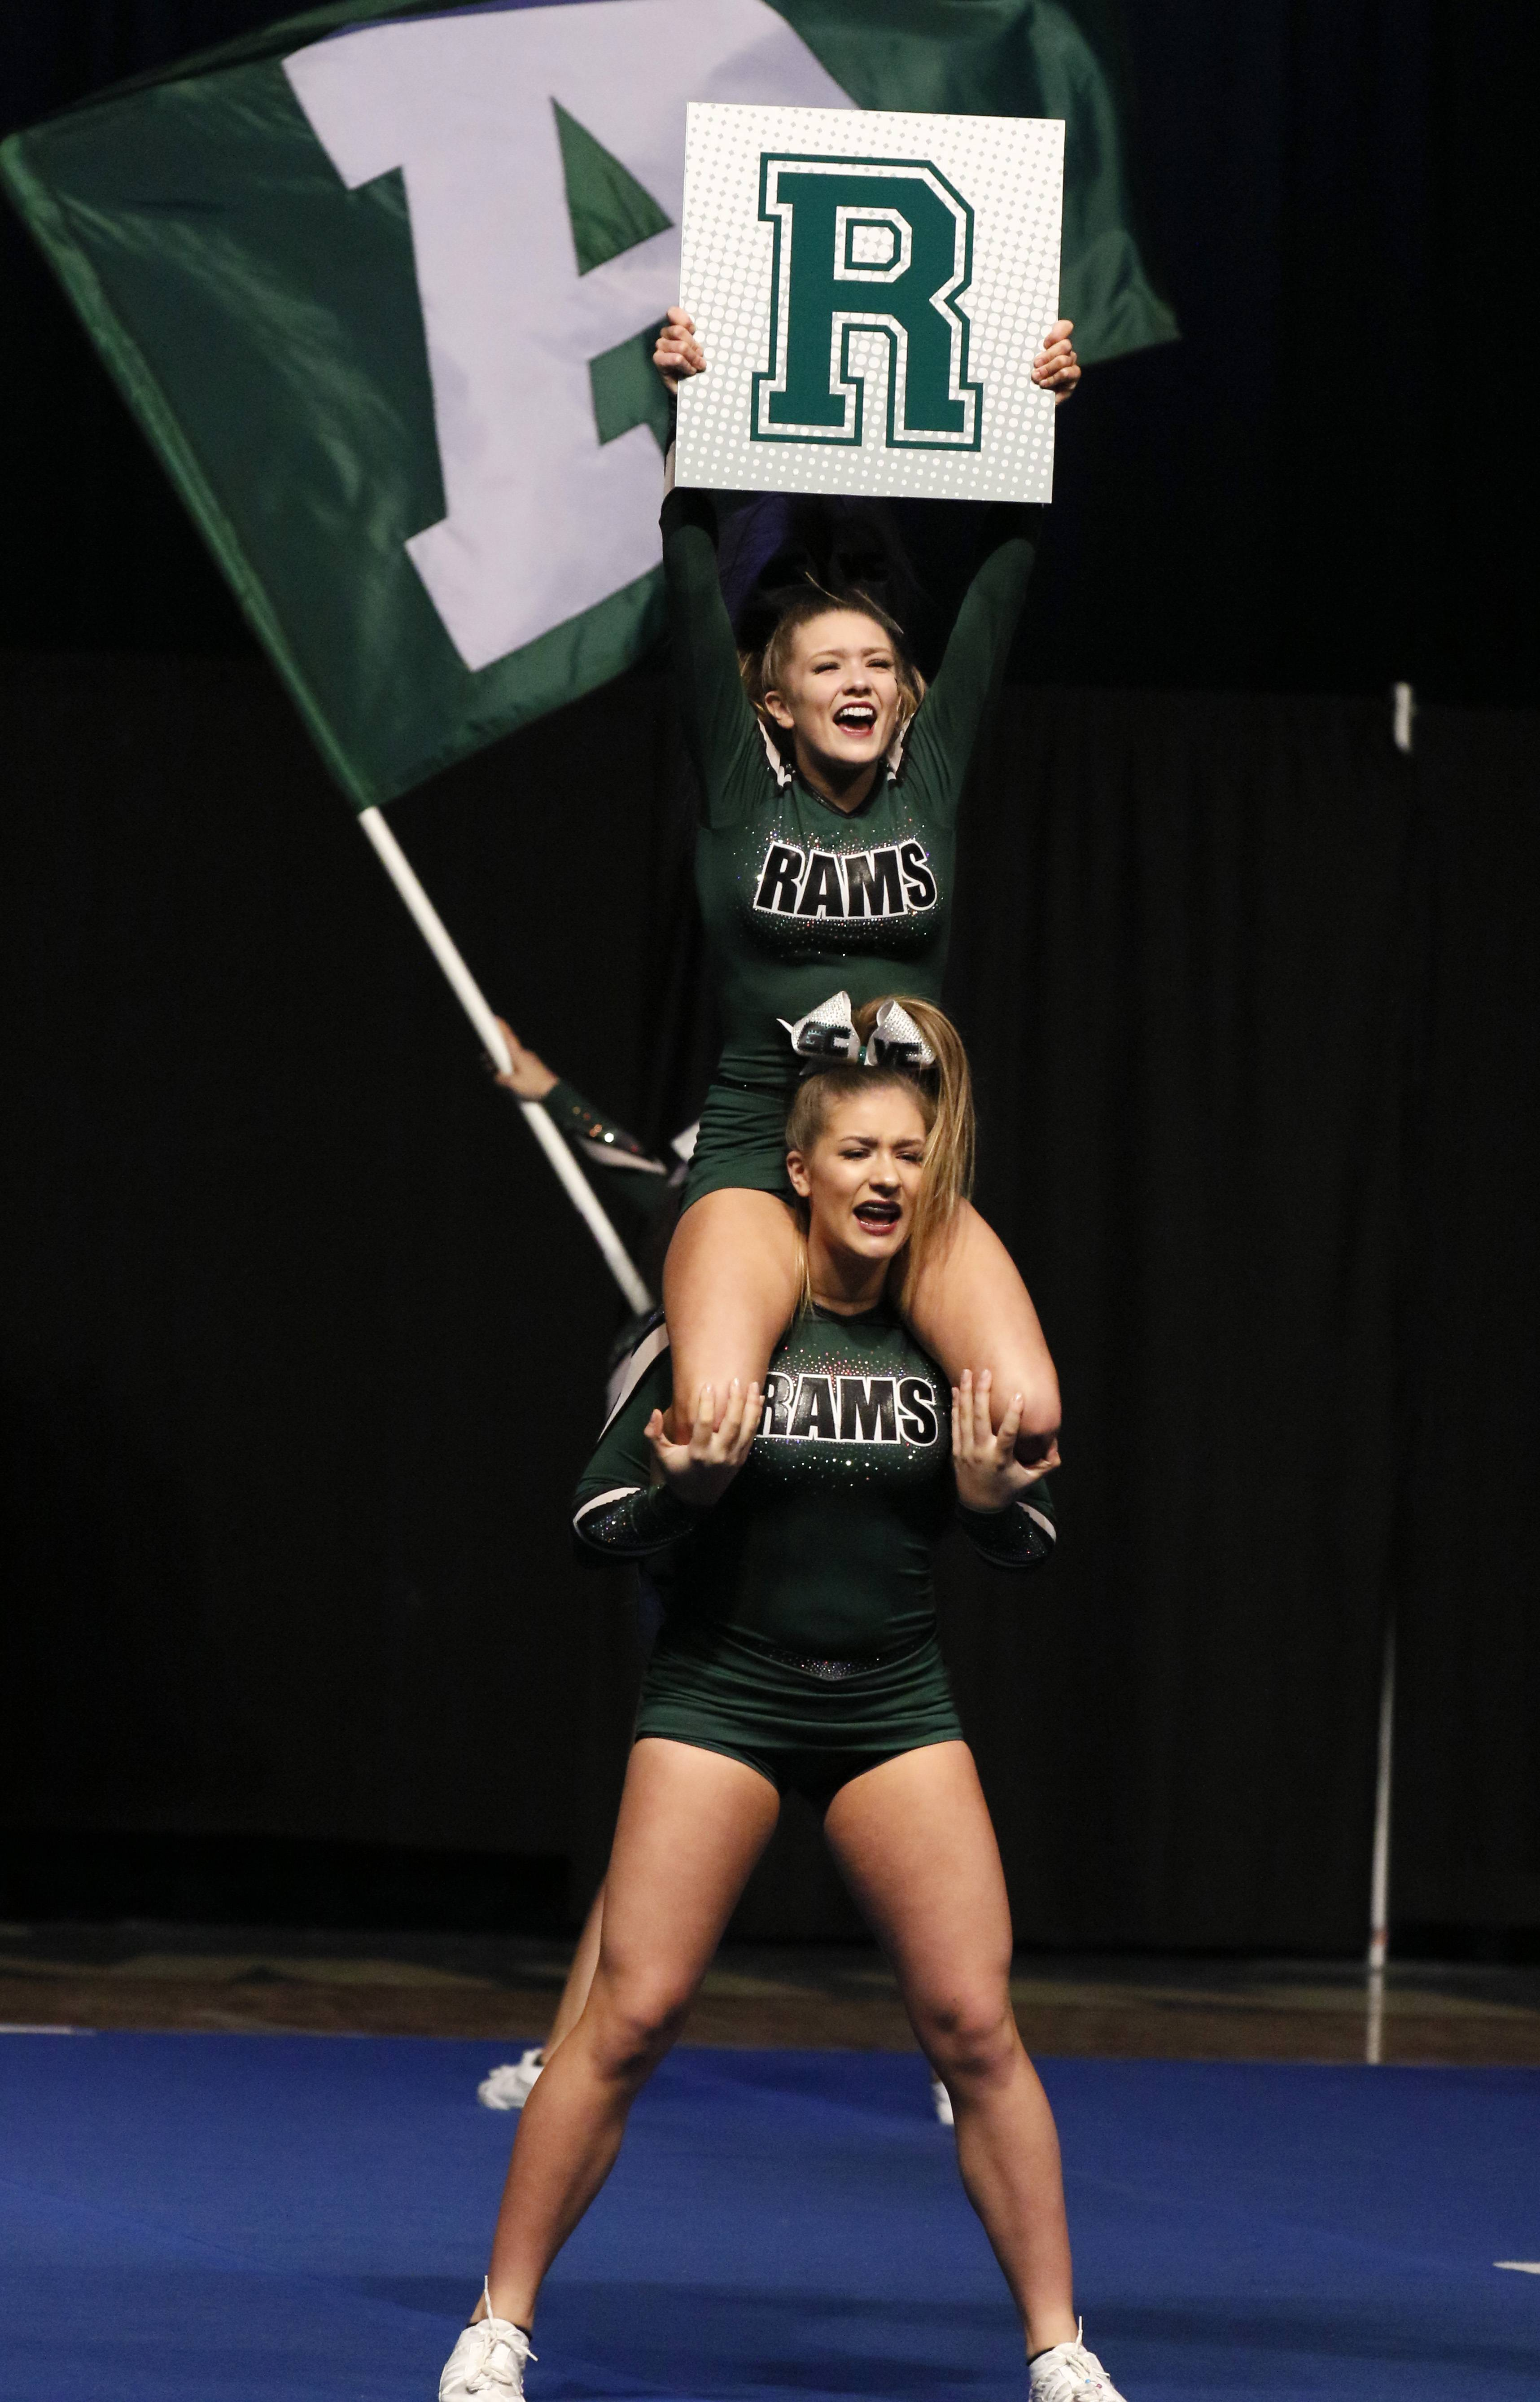 Grayslake Central High School competes Friday during the preliminary round of the IHSA state cheerleading competition at the Grossinger Motors Arena in Bloomington.